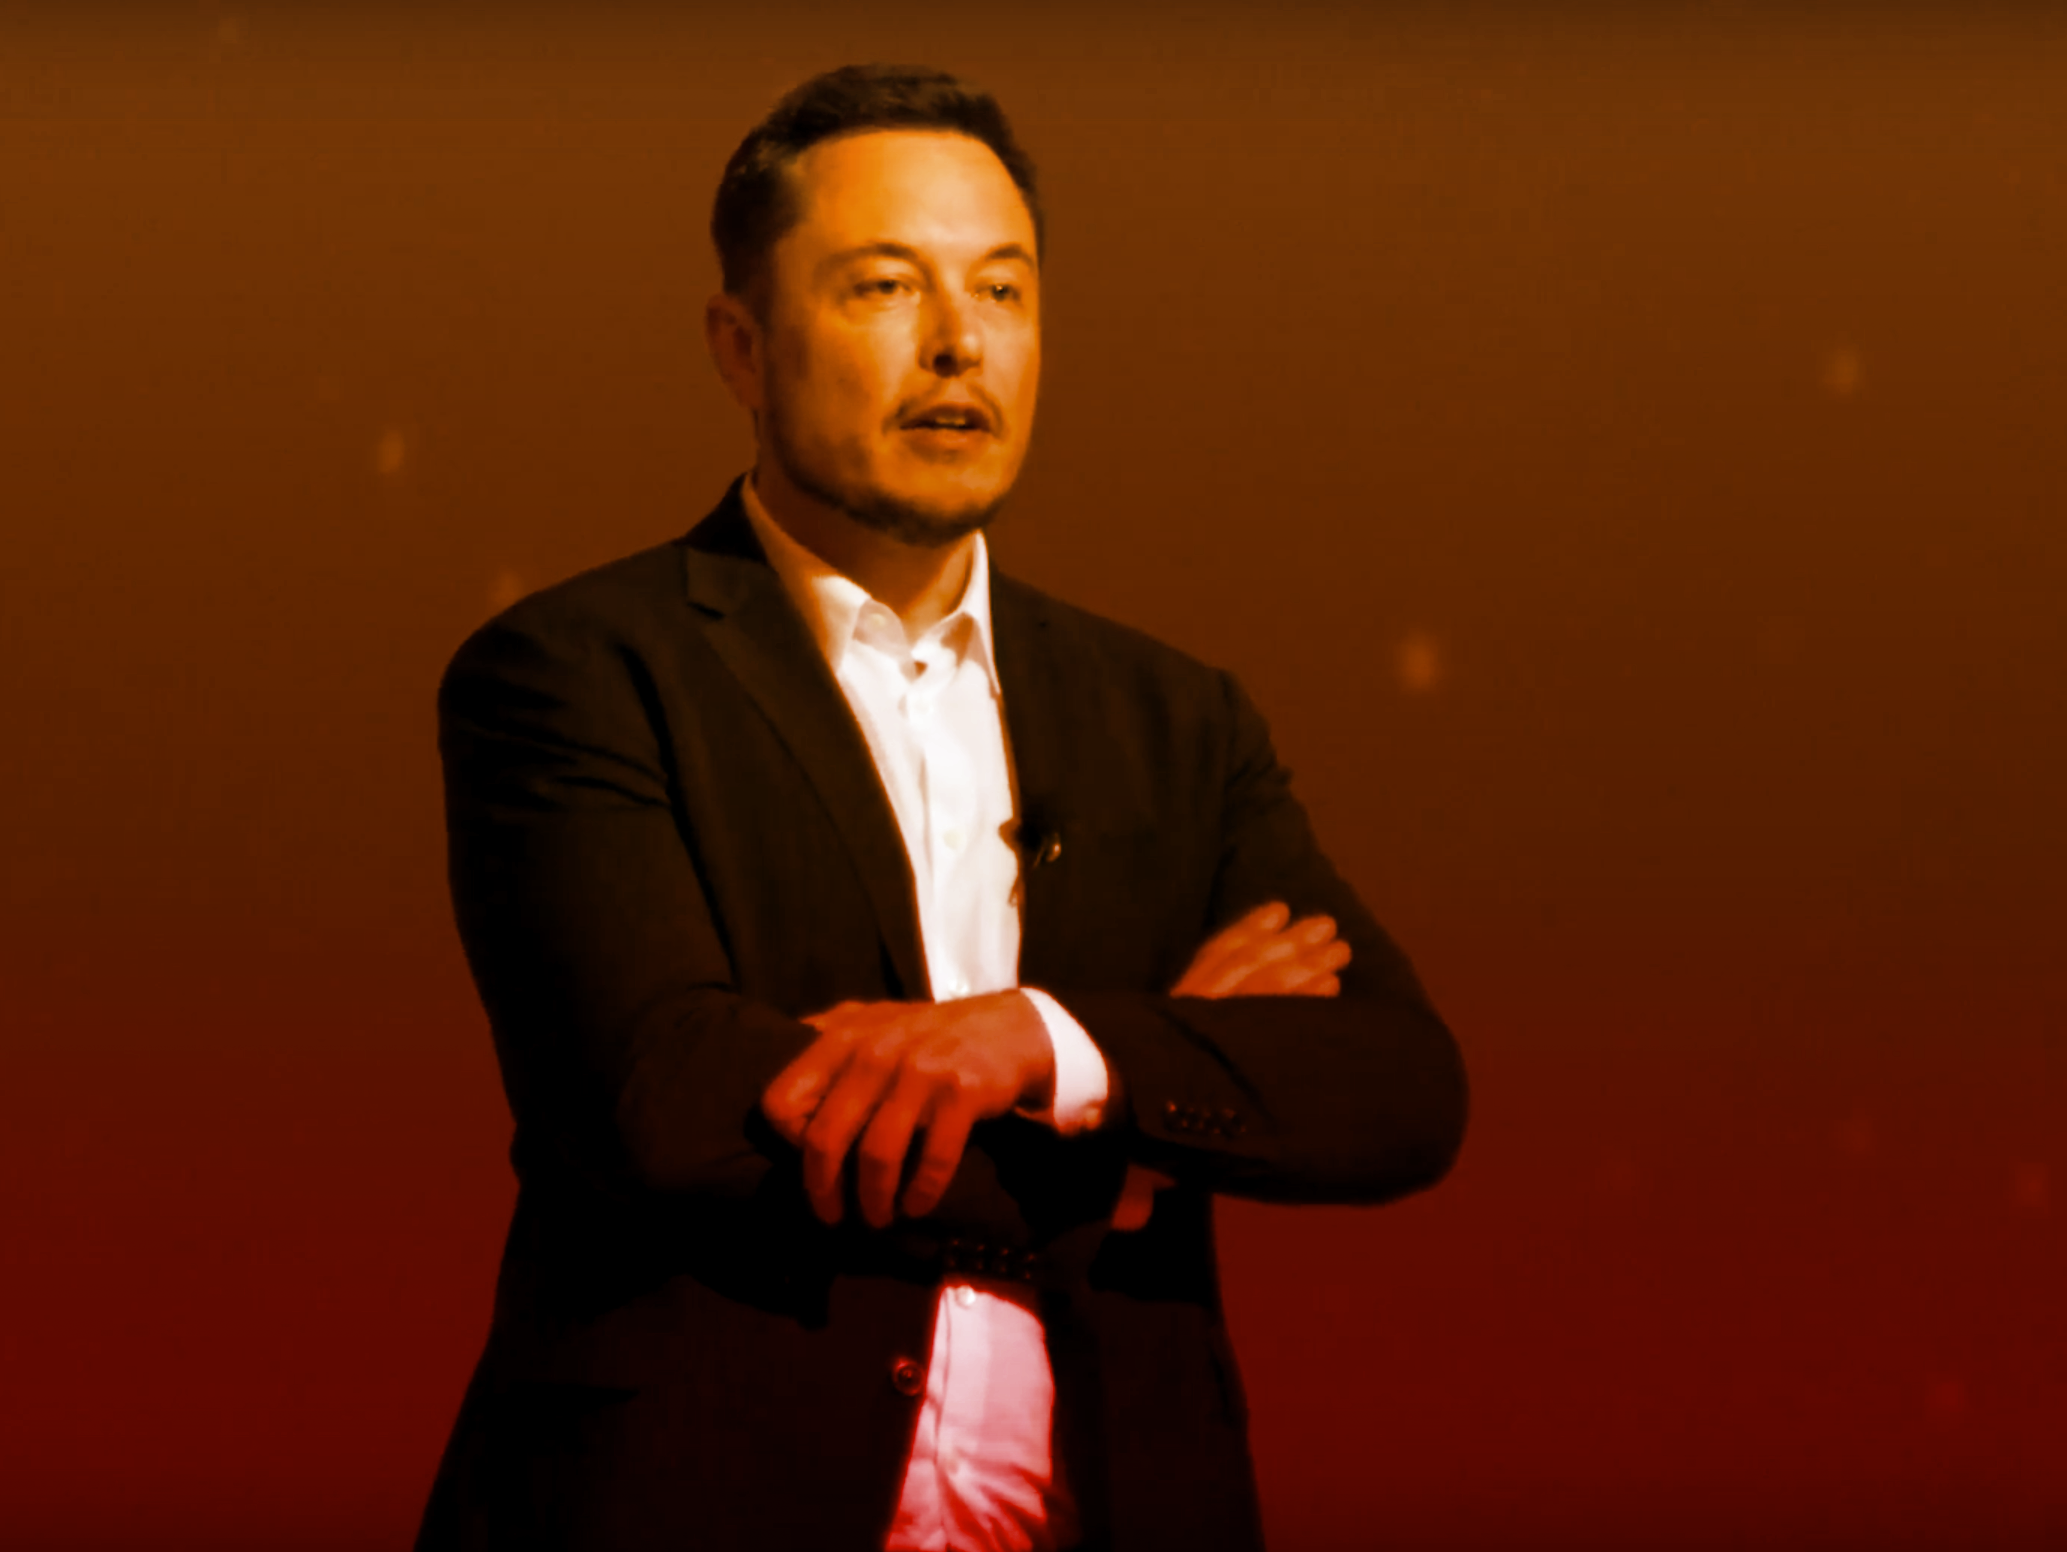 SpaceX: Elon Musk Reveals Why Humanity Needs to Expand Beyond Earth